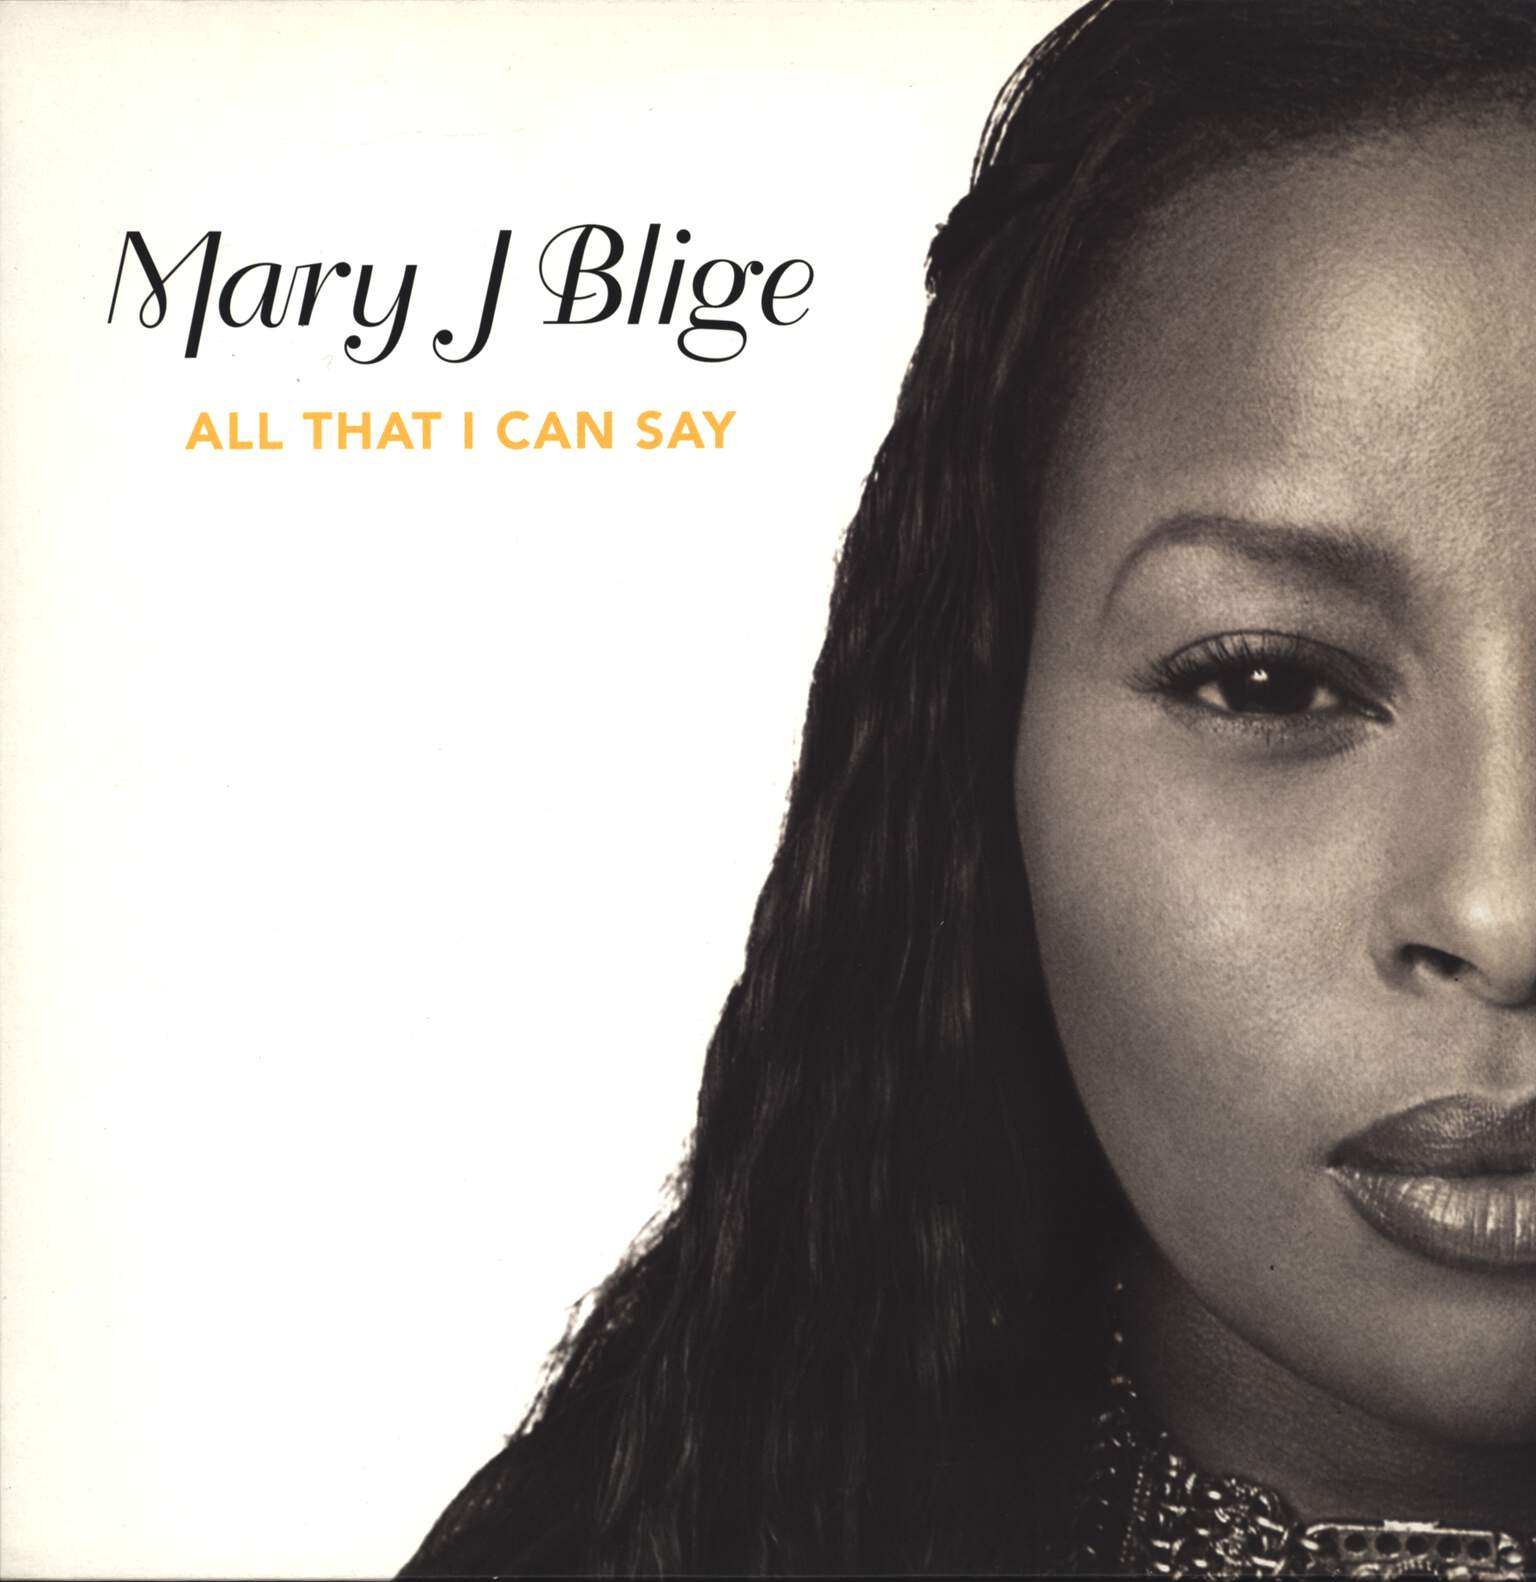 "Mary J. Blige: All That I Can Say, 12"" Maxi Single (Vinyl)"